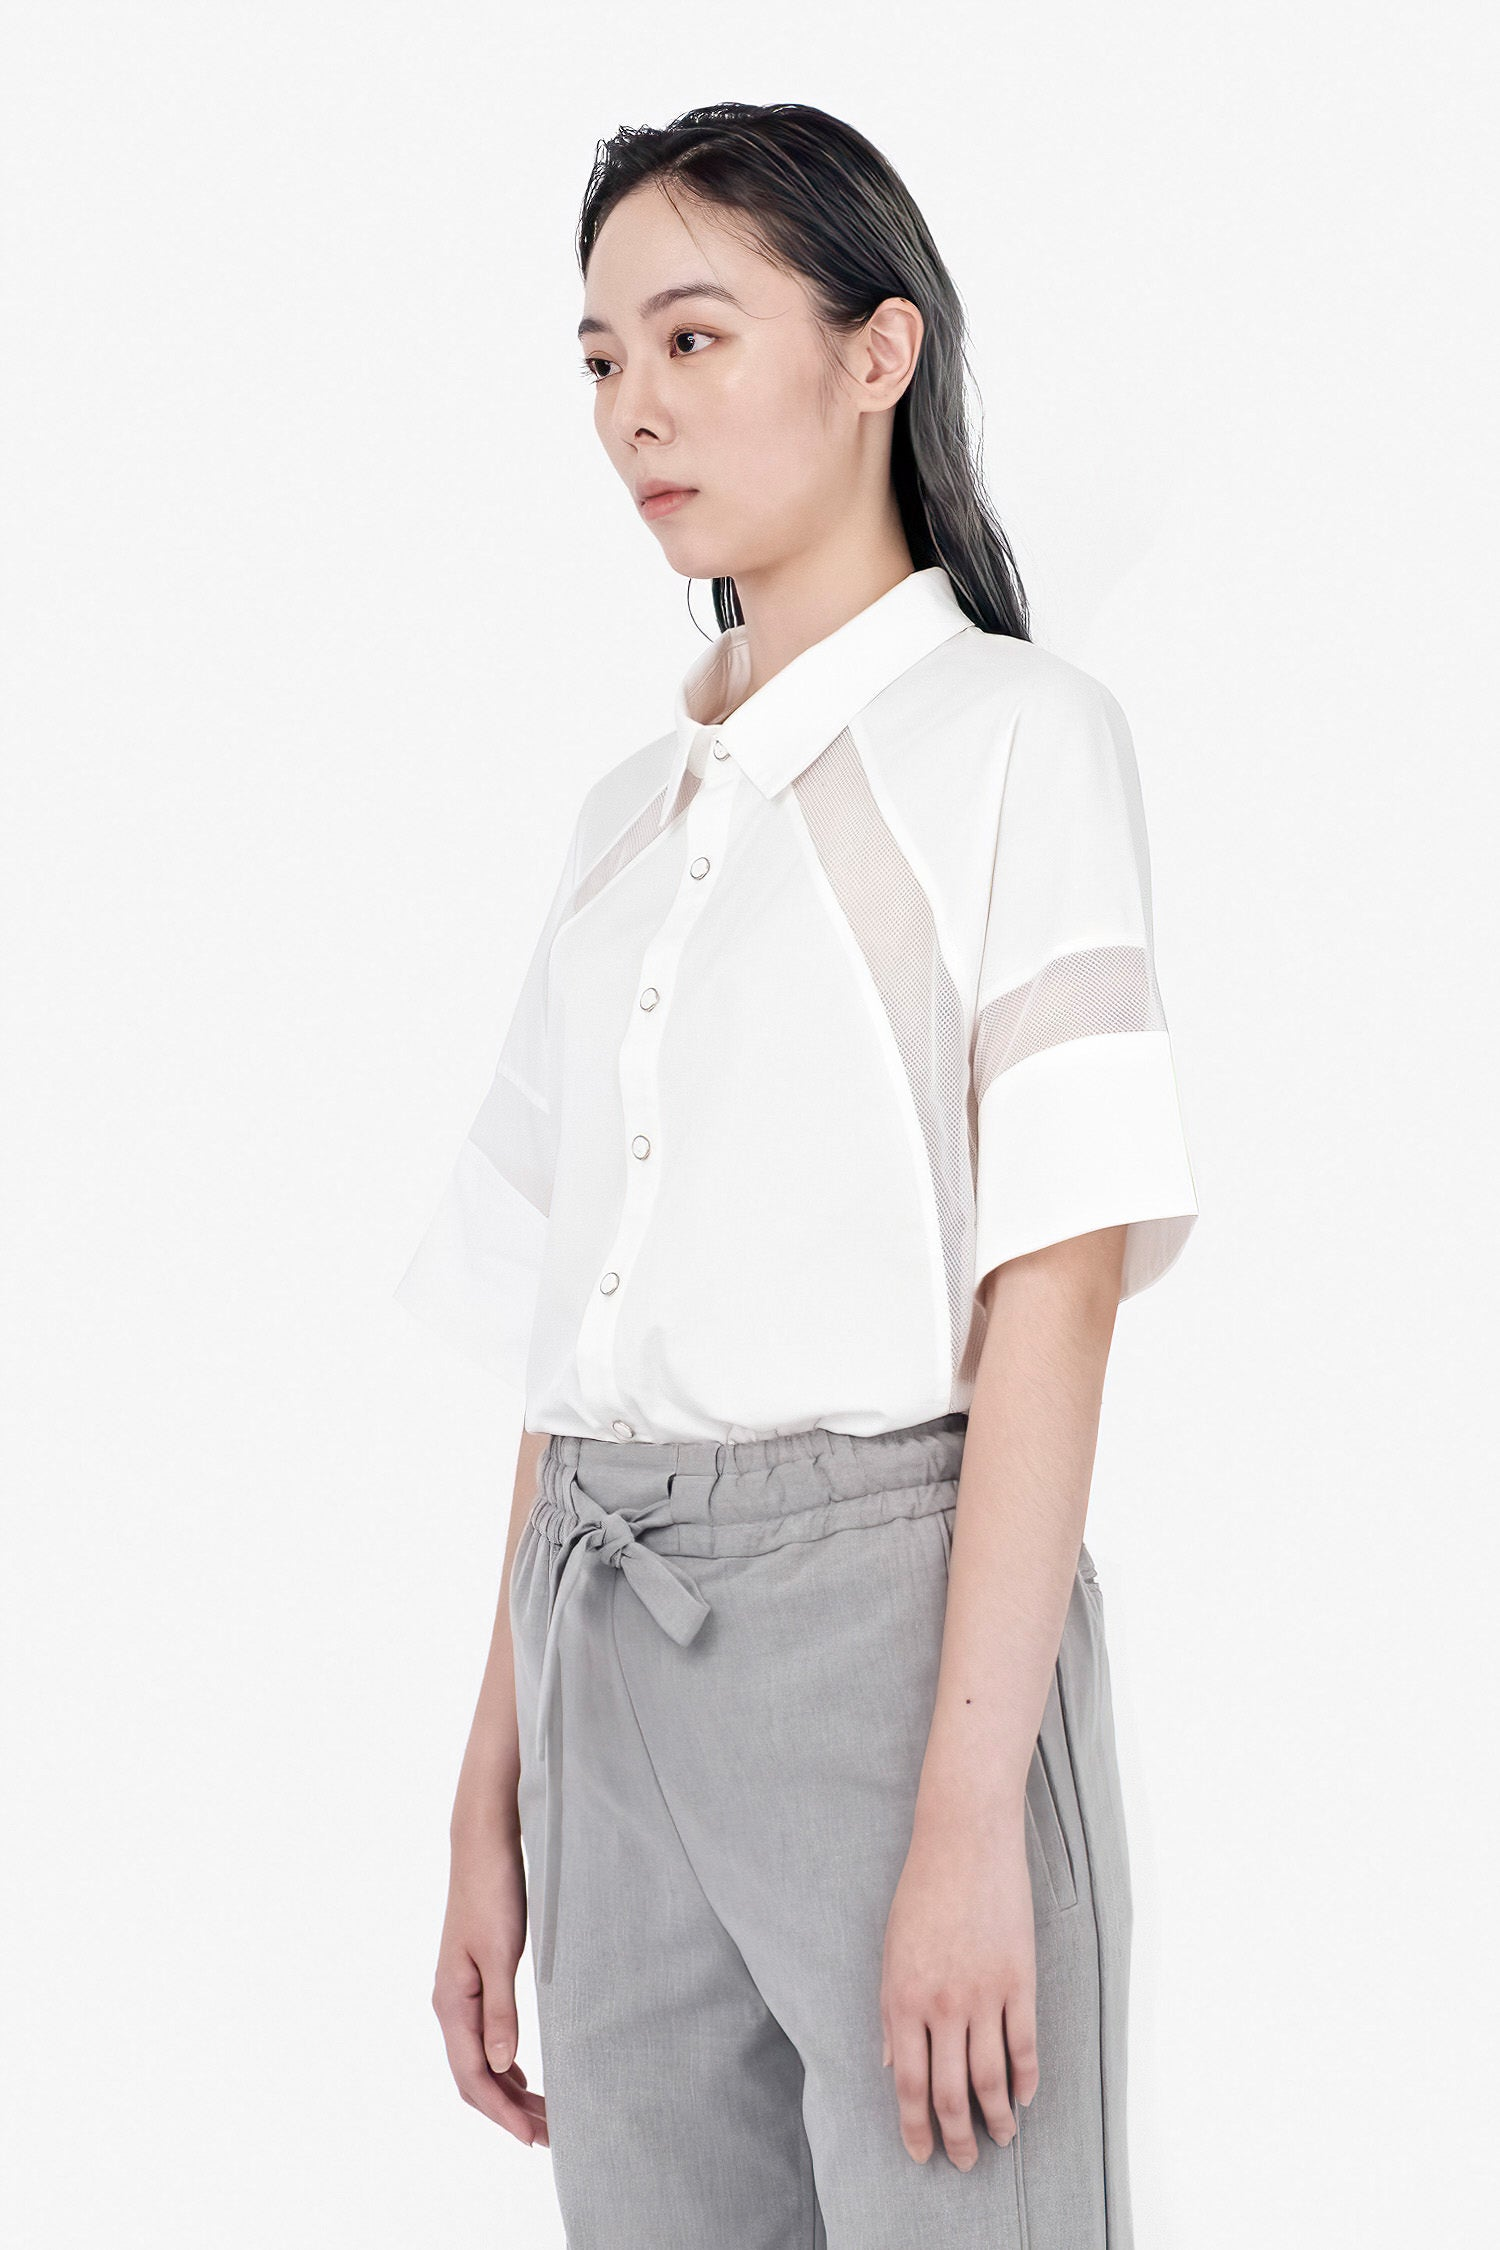 SEANNUNG - W-網布拼接短袖襯衫 W-styled Short Sleeve Mesh Shirt - Woman